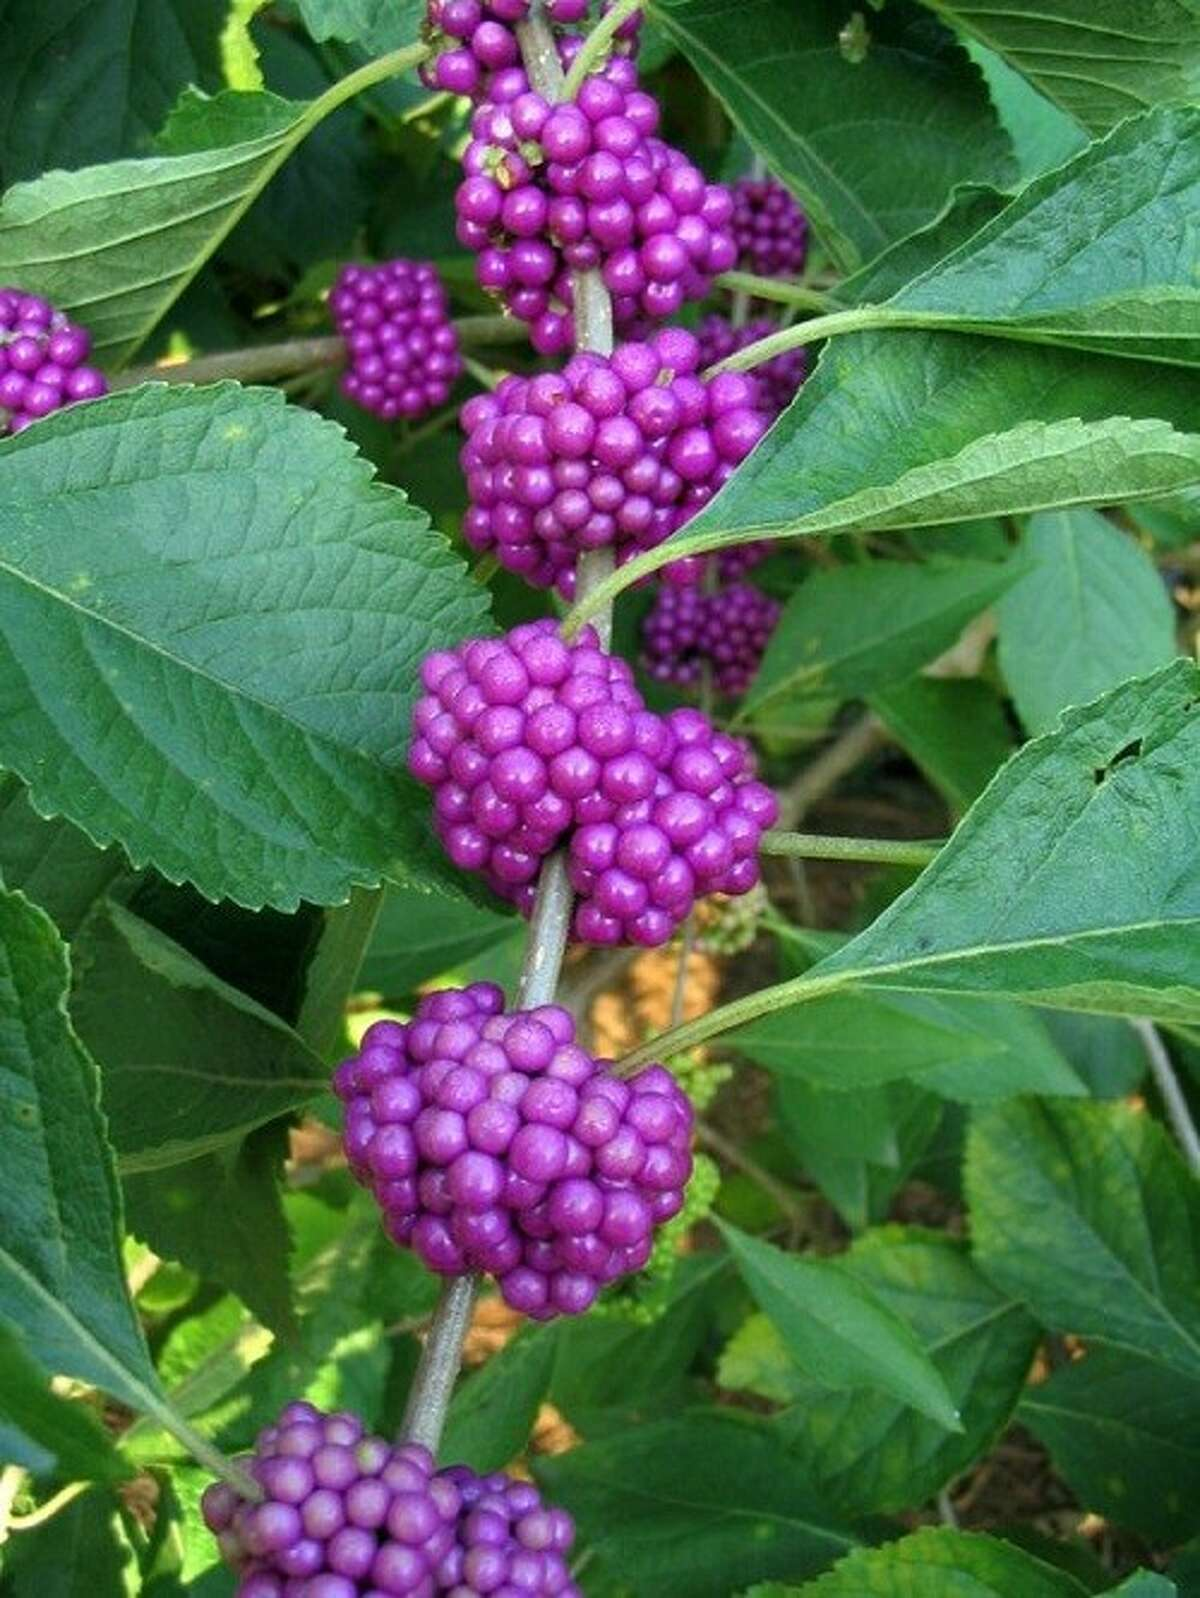 American beautyberry, Callicarpa americana, is an understory native shrub. The flowers are insignificant; the real drama occurs in fall with the display of beautiful berries. The birds love the berries and they make a delicious jelly.